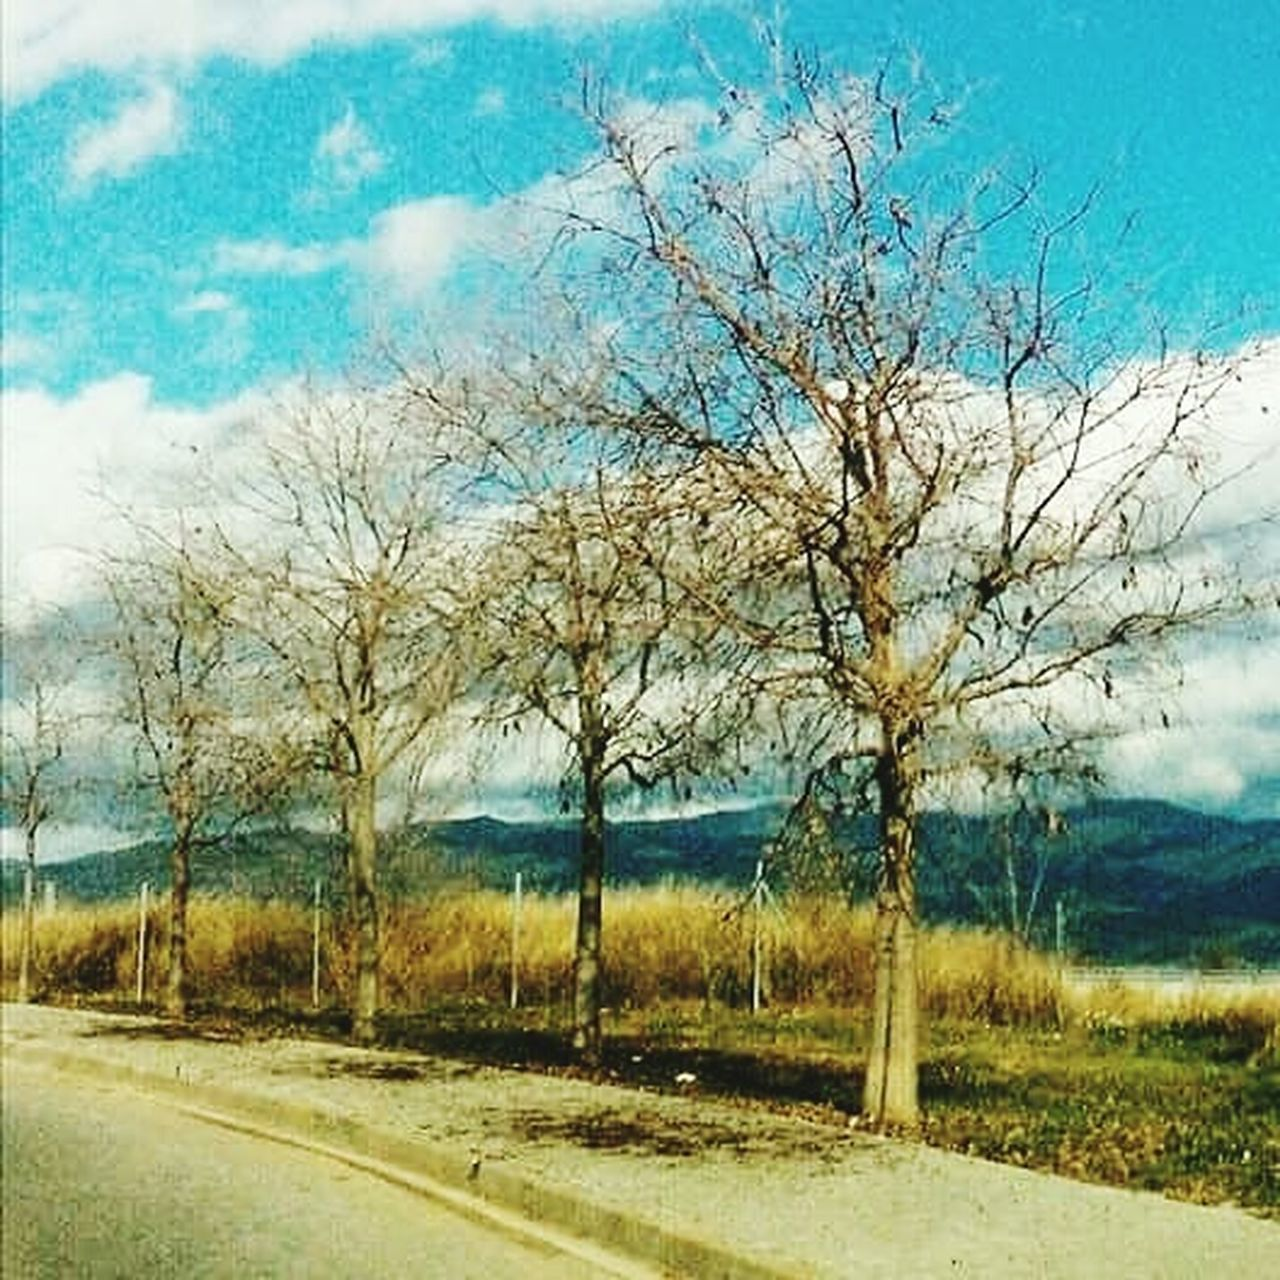 tree, sky, cloud - sky, landscape, road, bare tree, blue, nature, scenics, no people, rural scene, outdoors, day, beauty in nature